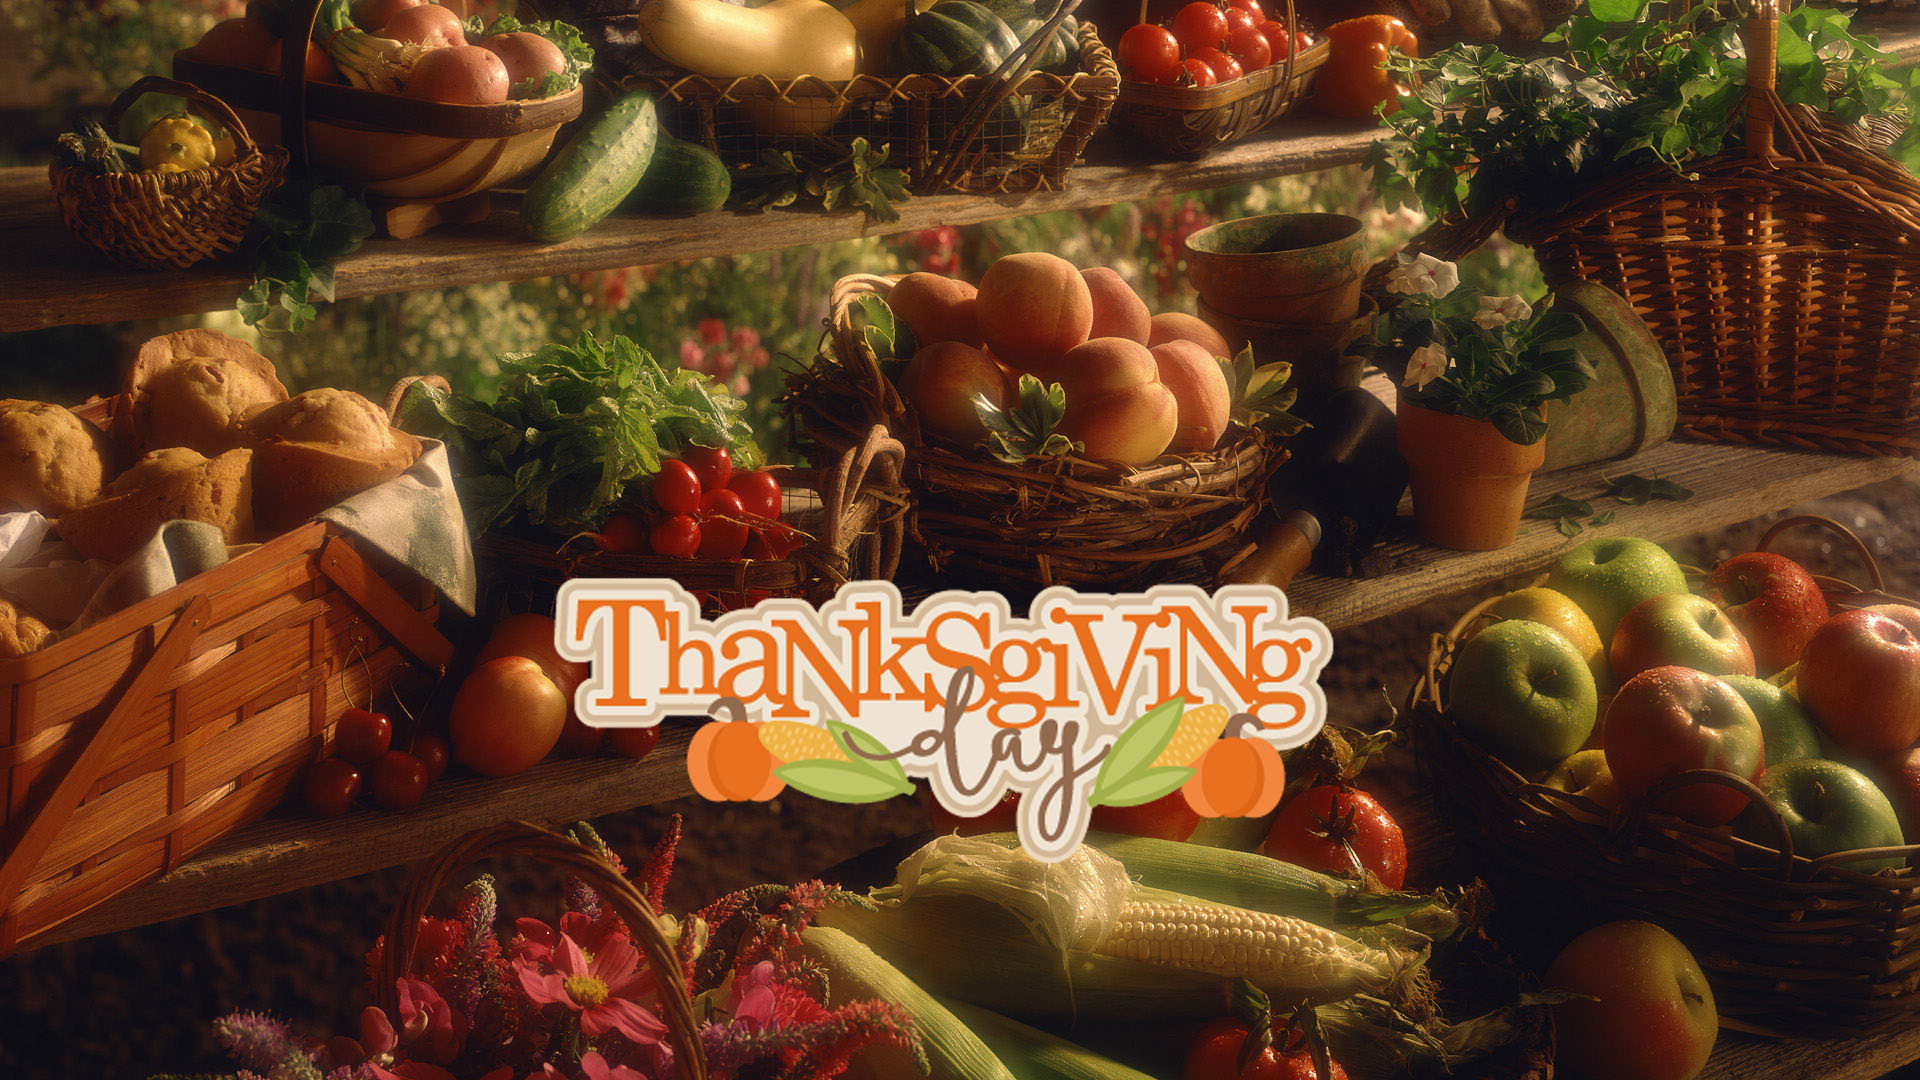 happy thanksgiving day wishes cool best background hd wallpaper